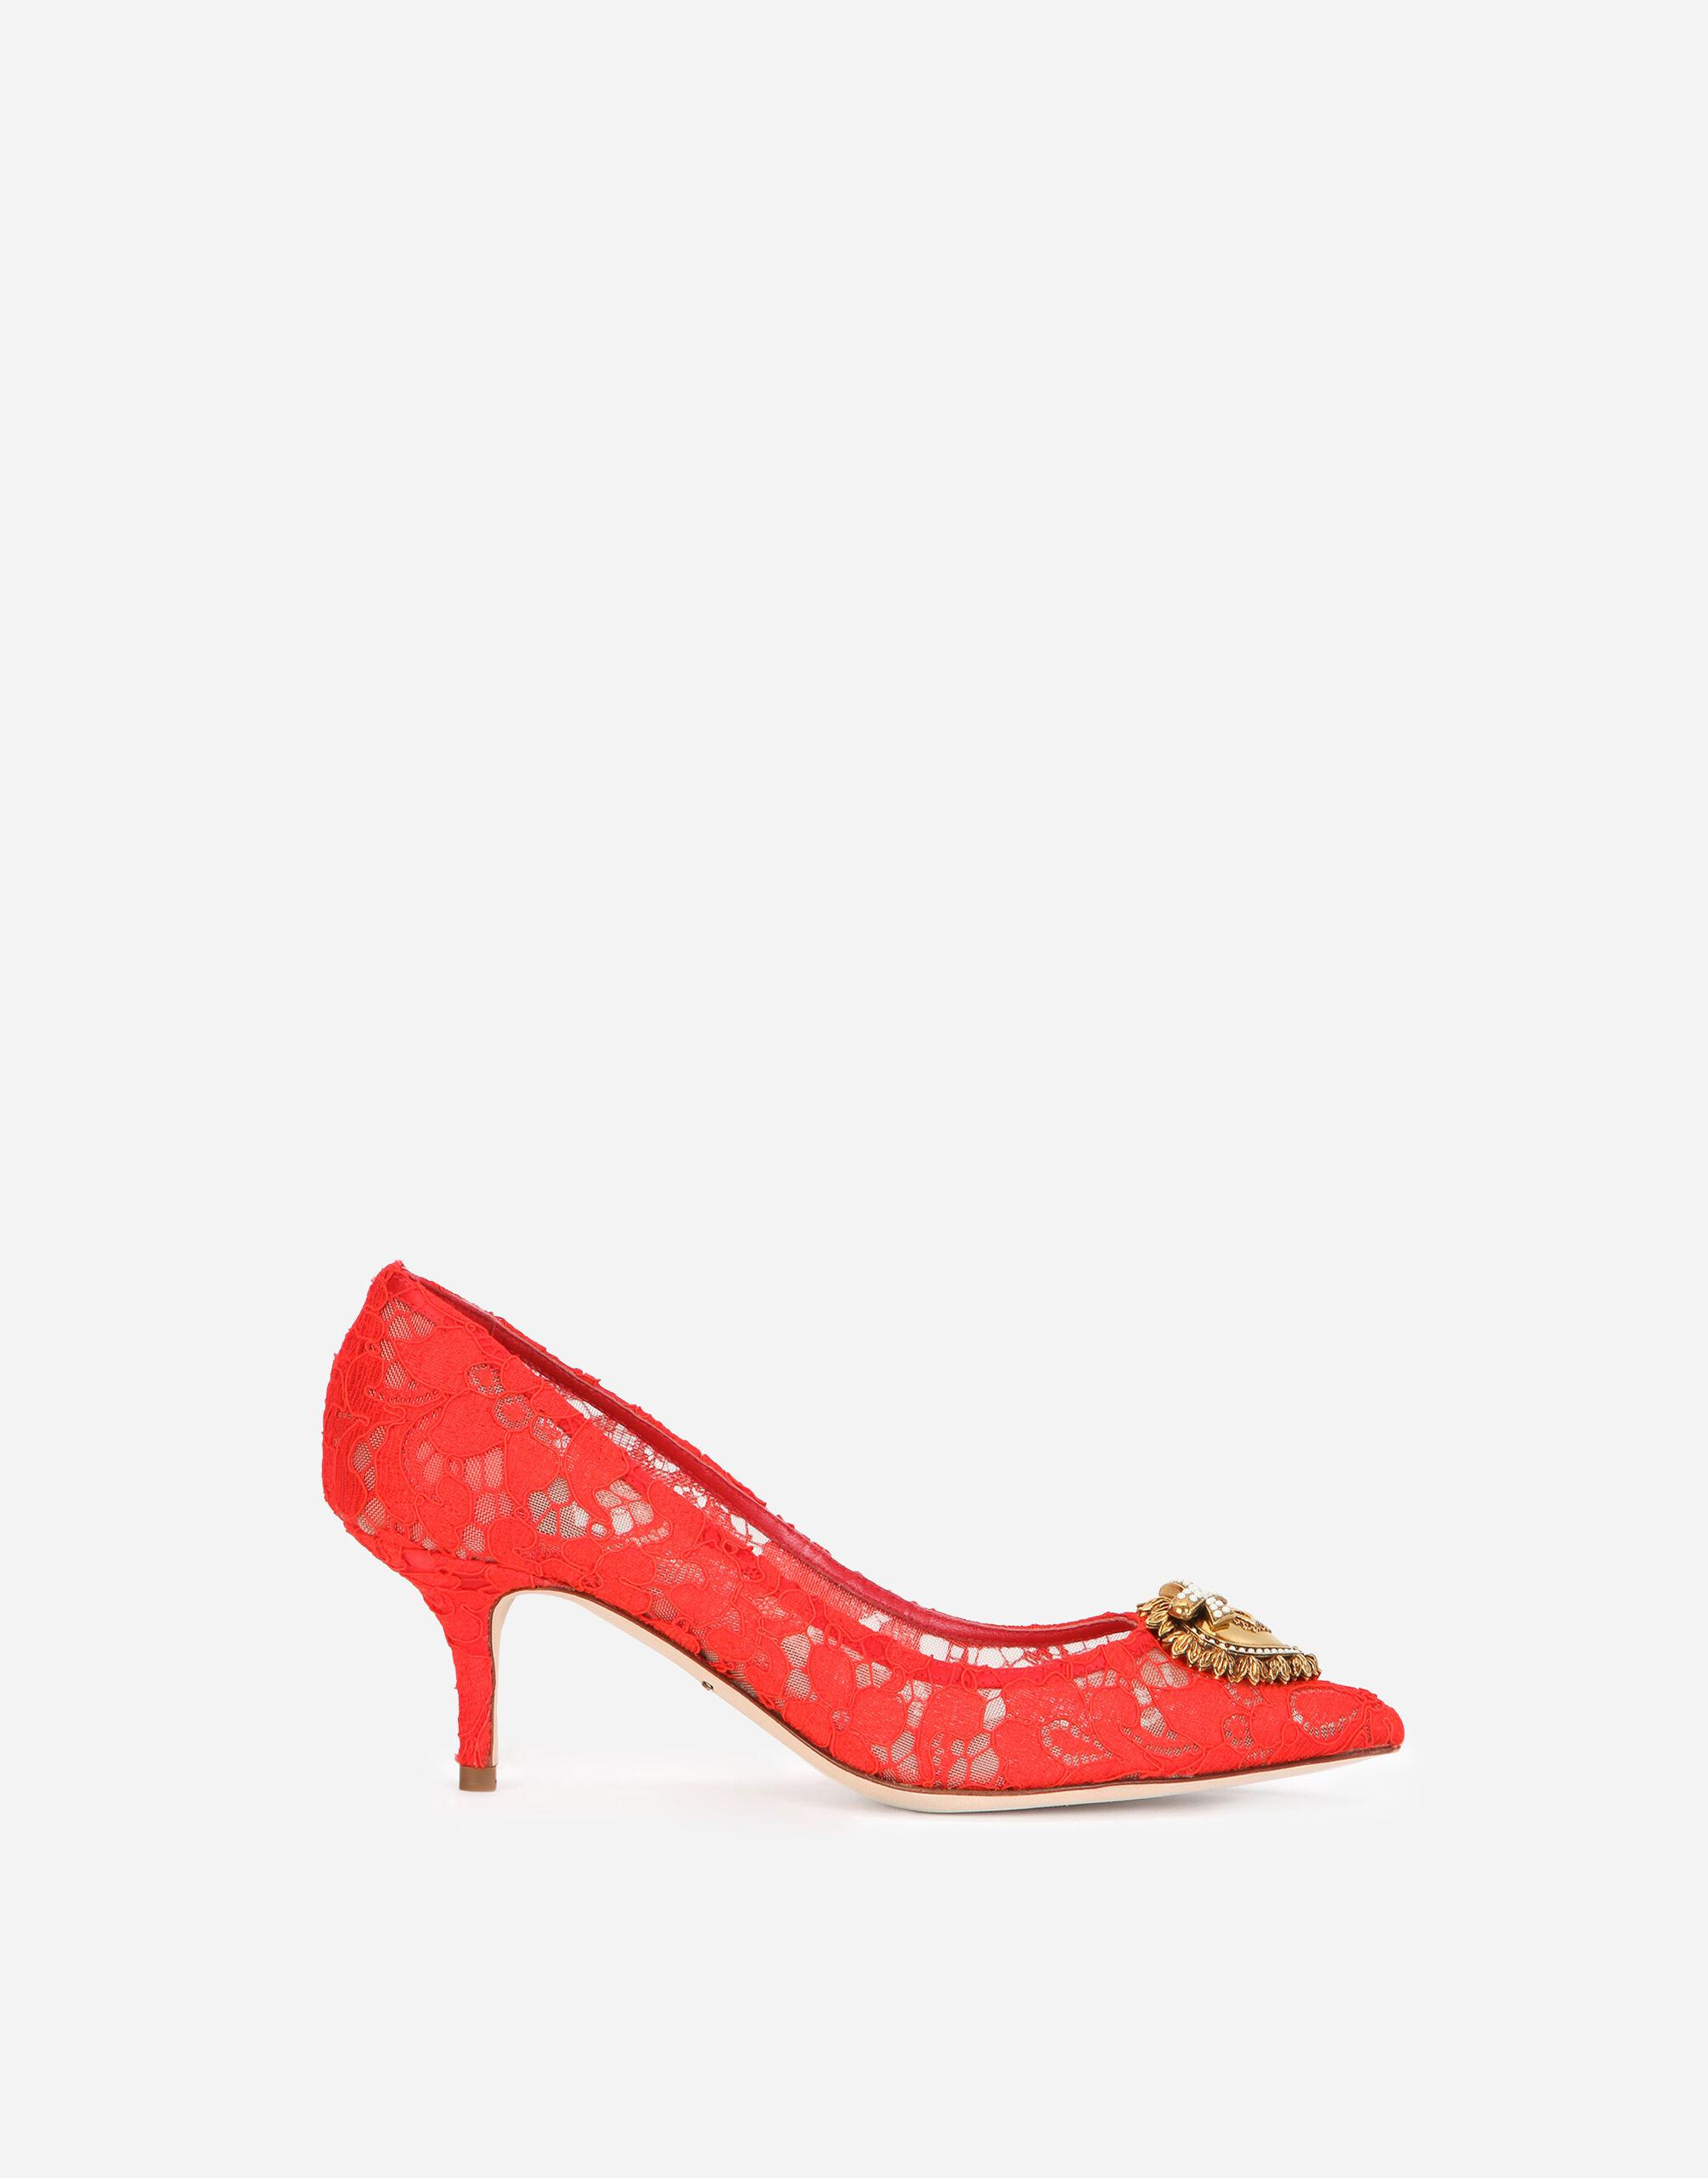 Taormina lace pumps with Devotion heart